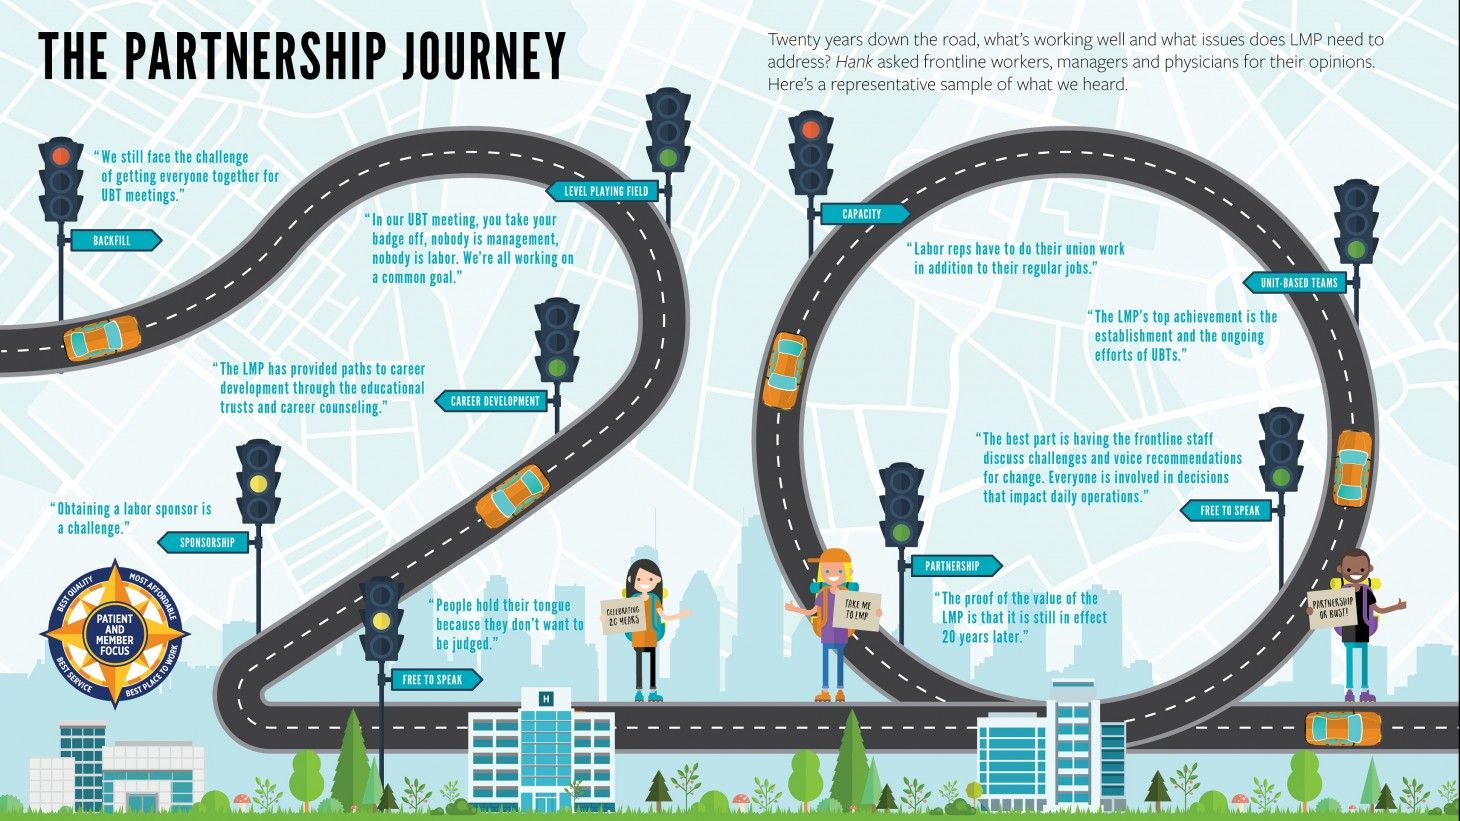 a graphic on 20 years of partnership successes and challenges